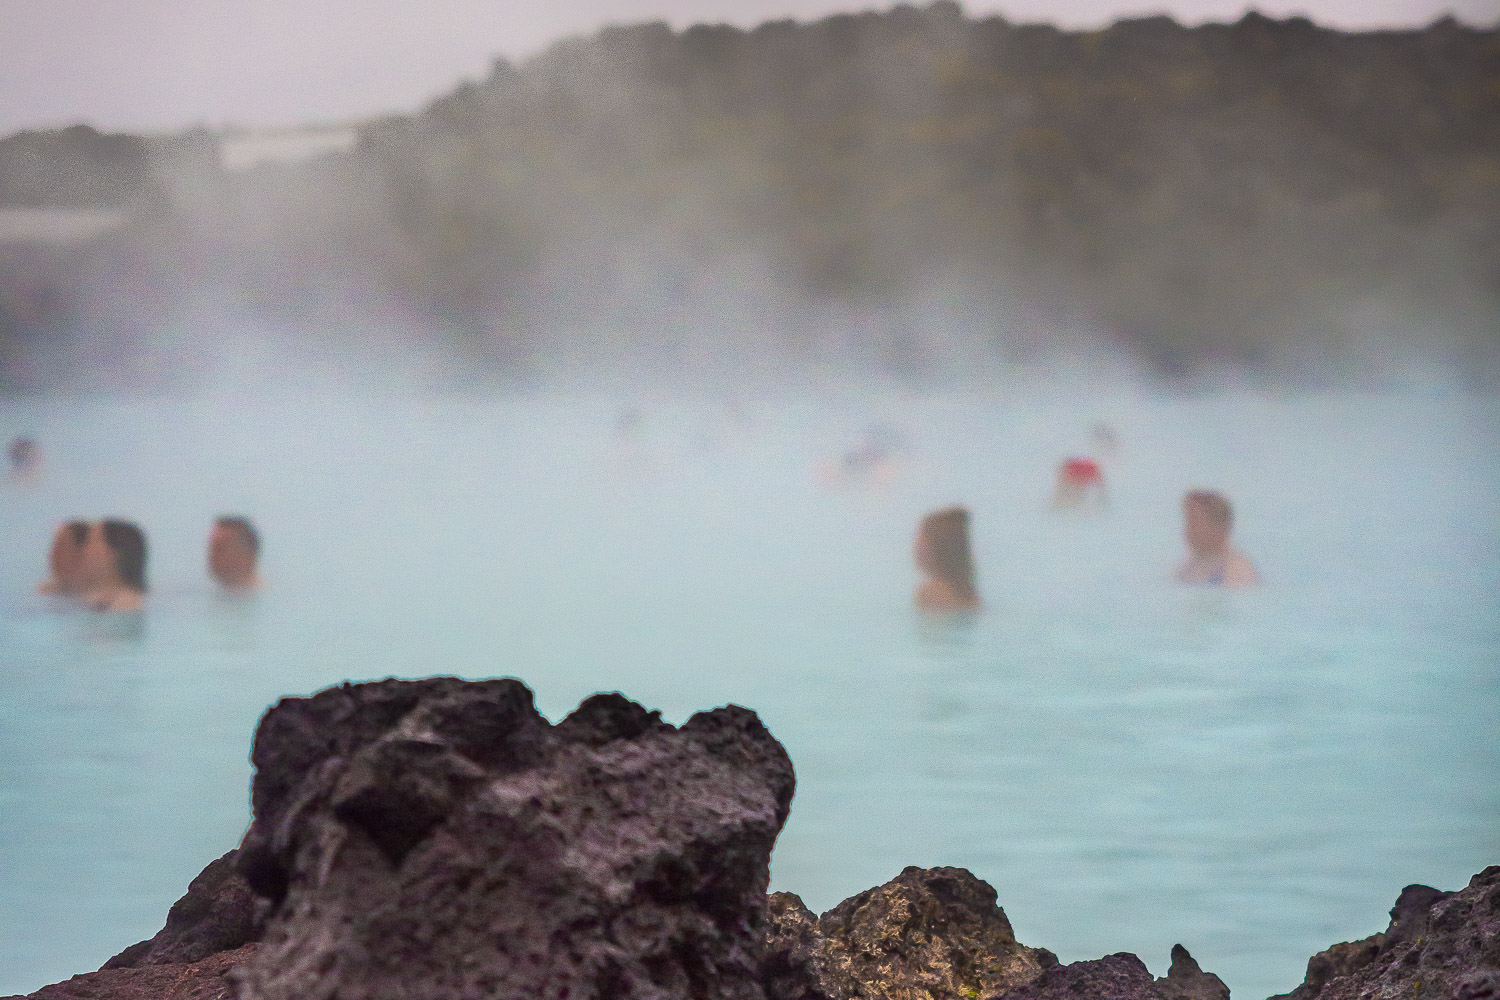 Hot spring bath at the Blue Lagoon, Reykjavik, Iceland.